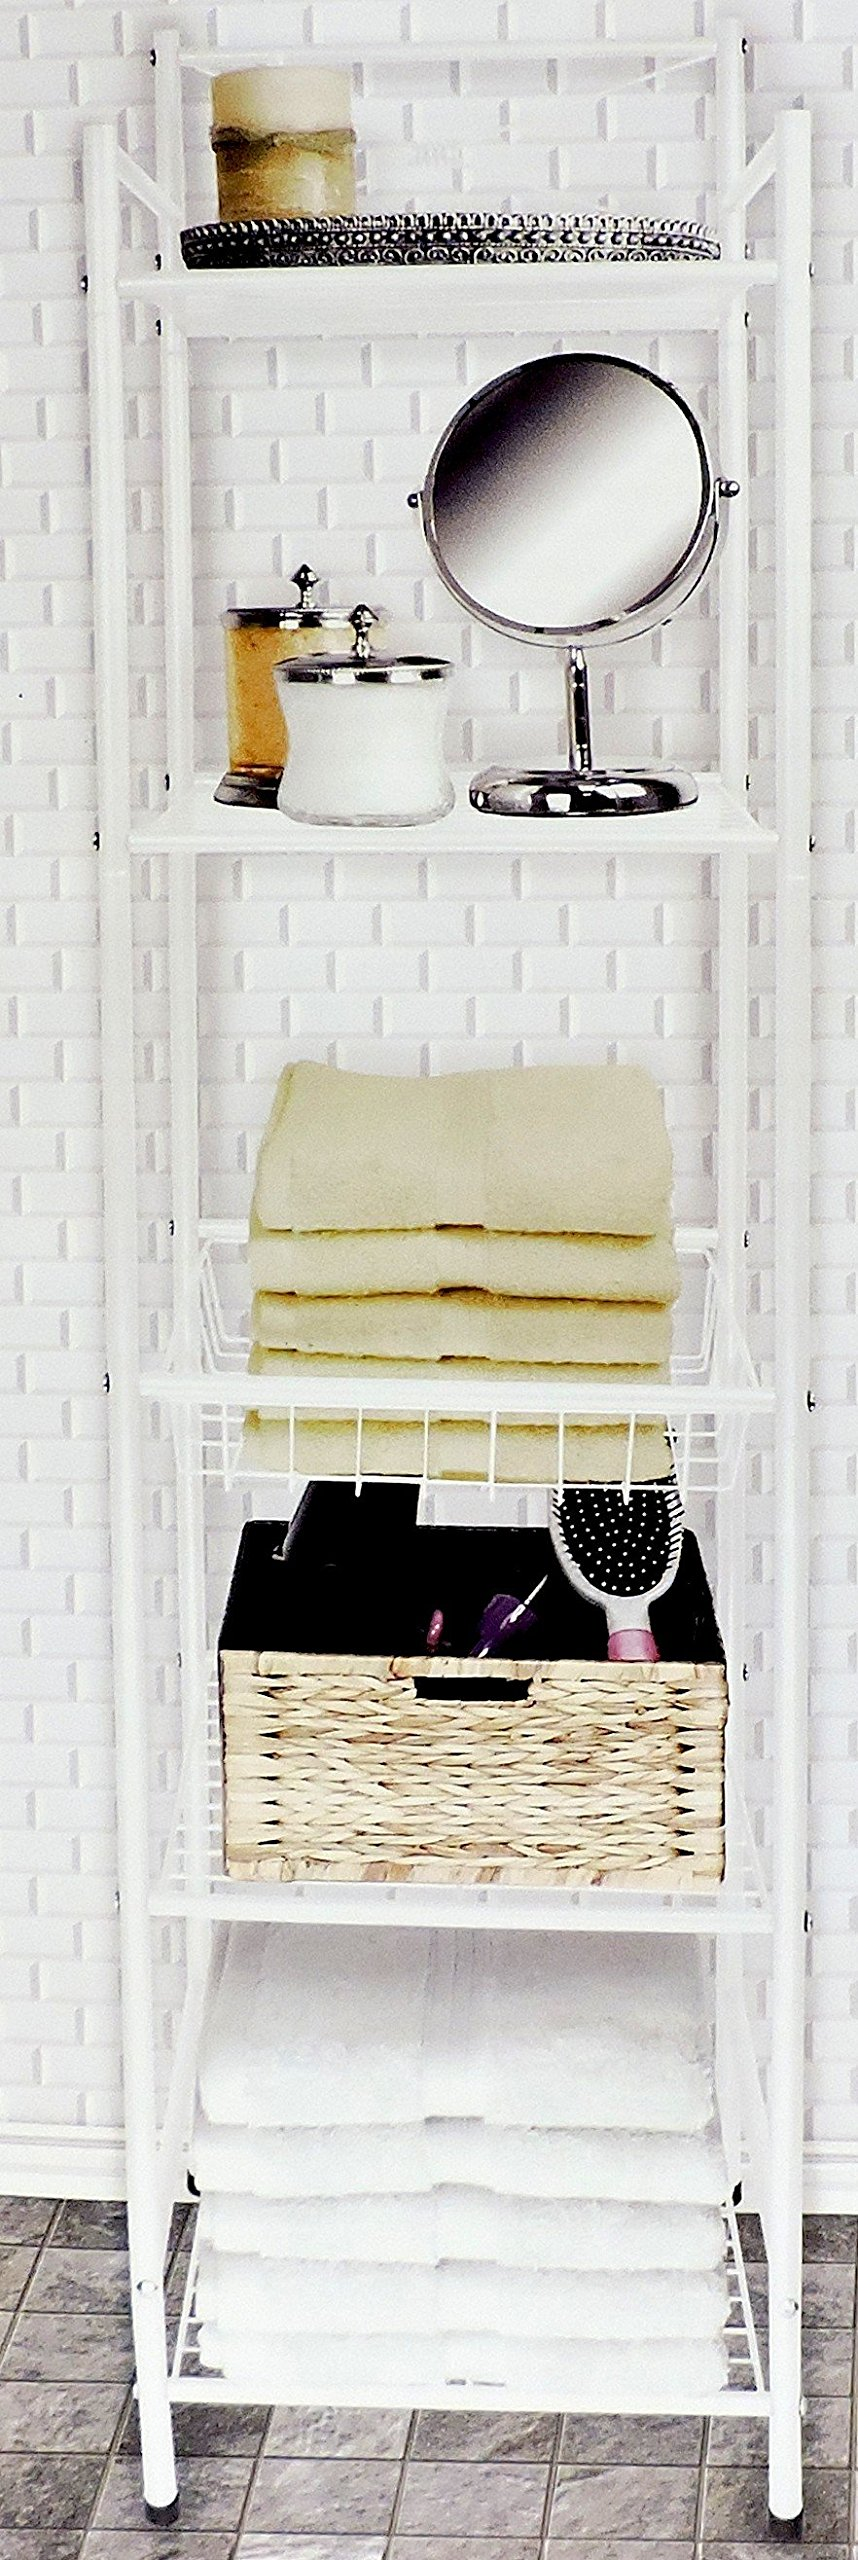 DINY Home & Style Deluxe Spa Tower 5 Tier Towel & Bathroom Accessory Rack White